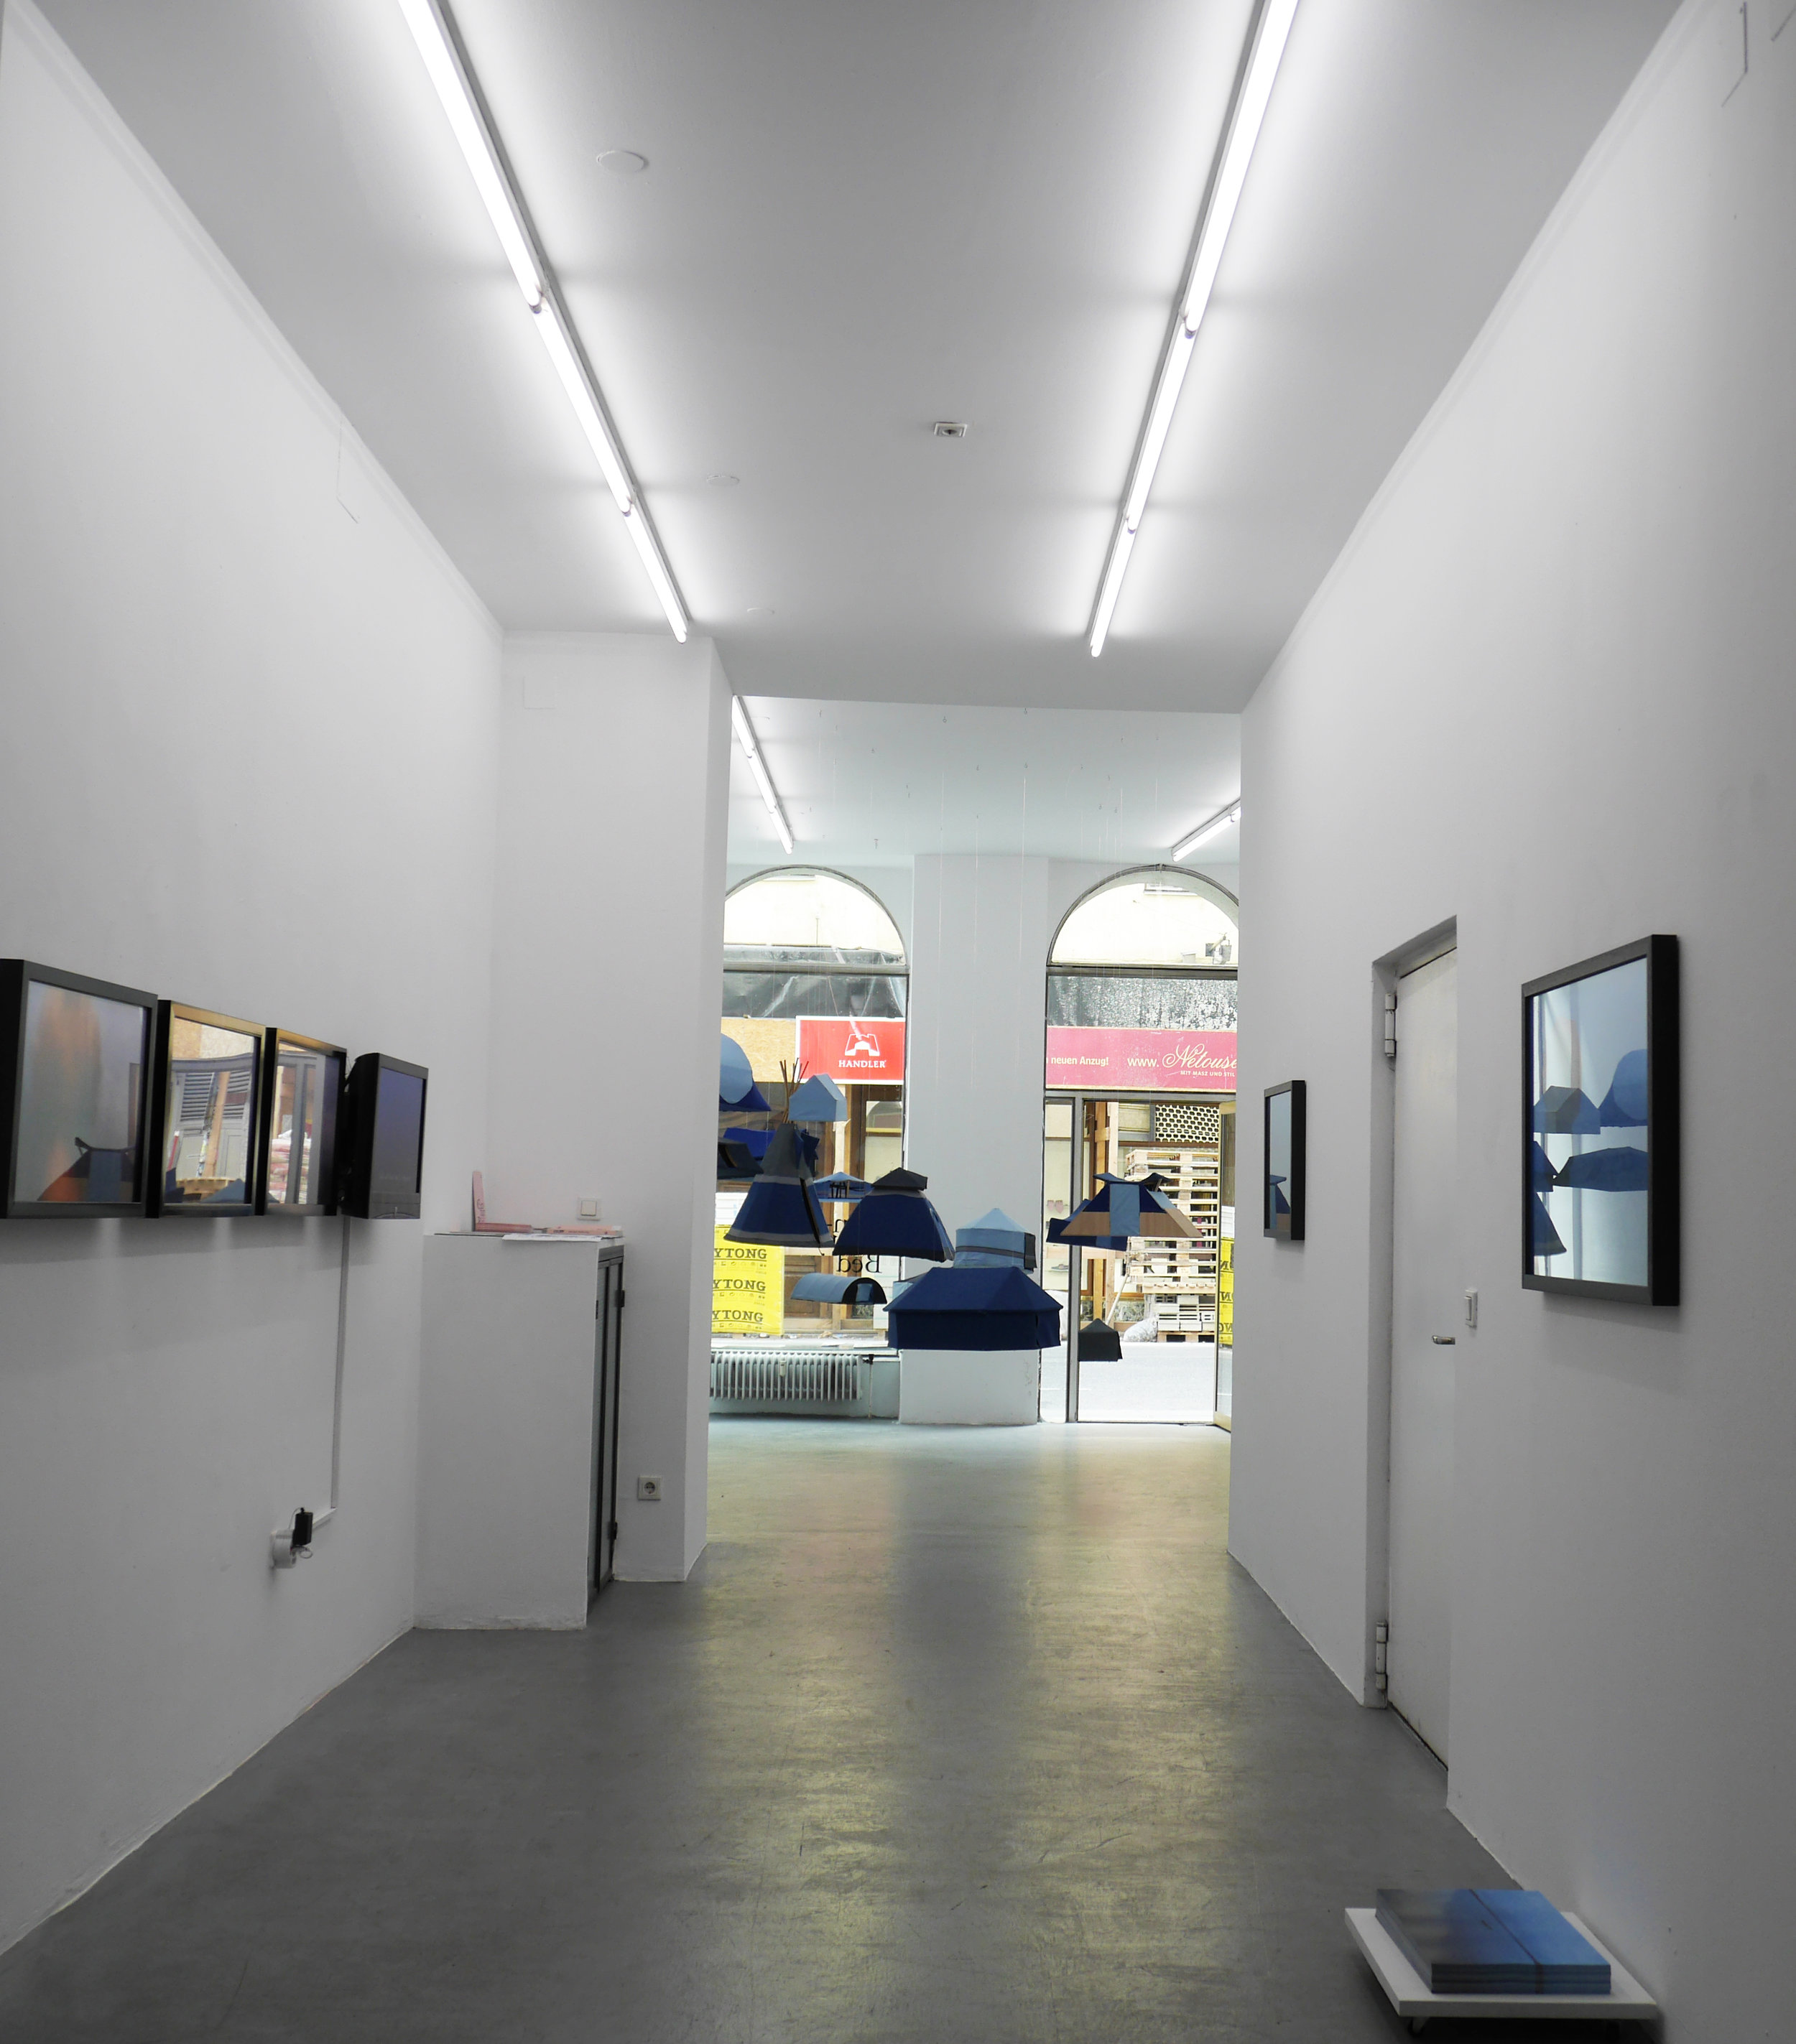 Exhibition View #underthestars, curated by_Maja & Reuben Fowkes, 2014, Courtesy: Galerie Knoll